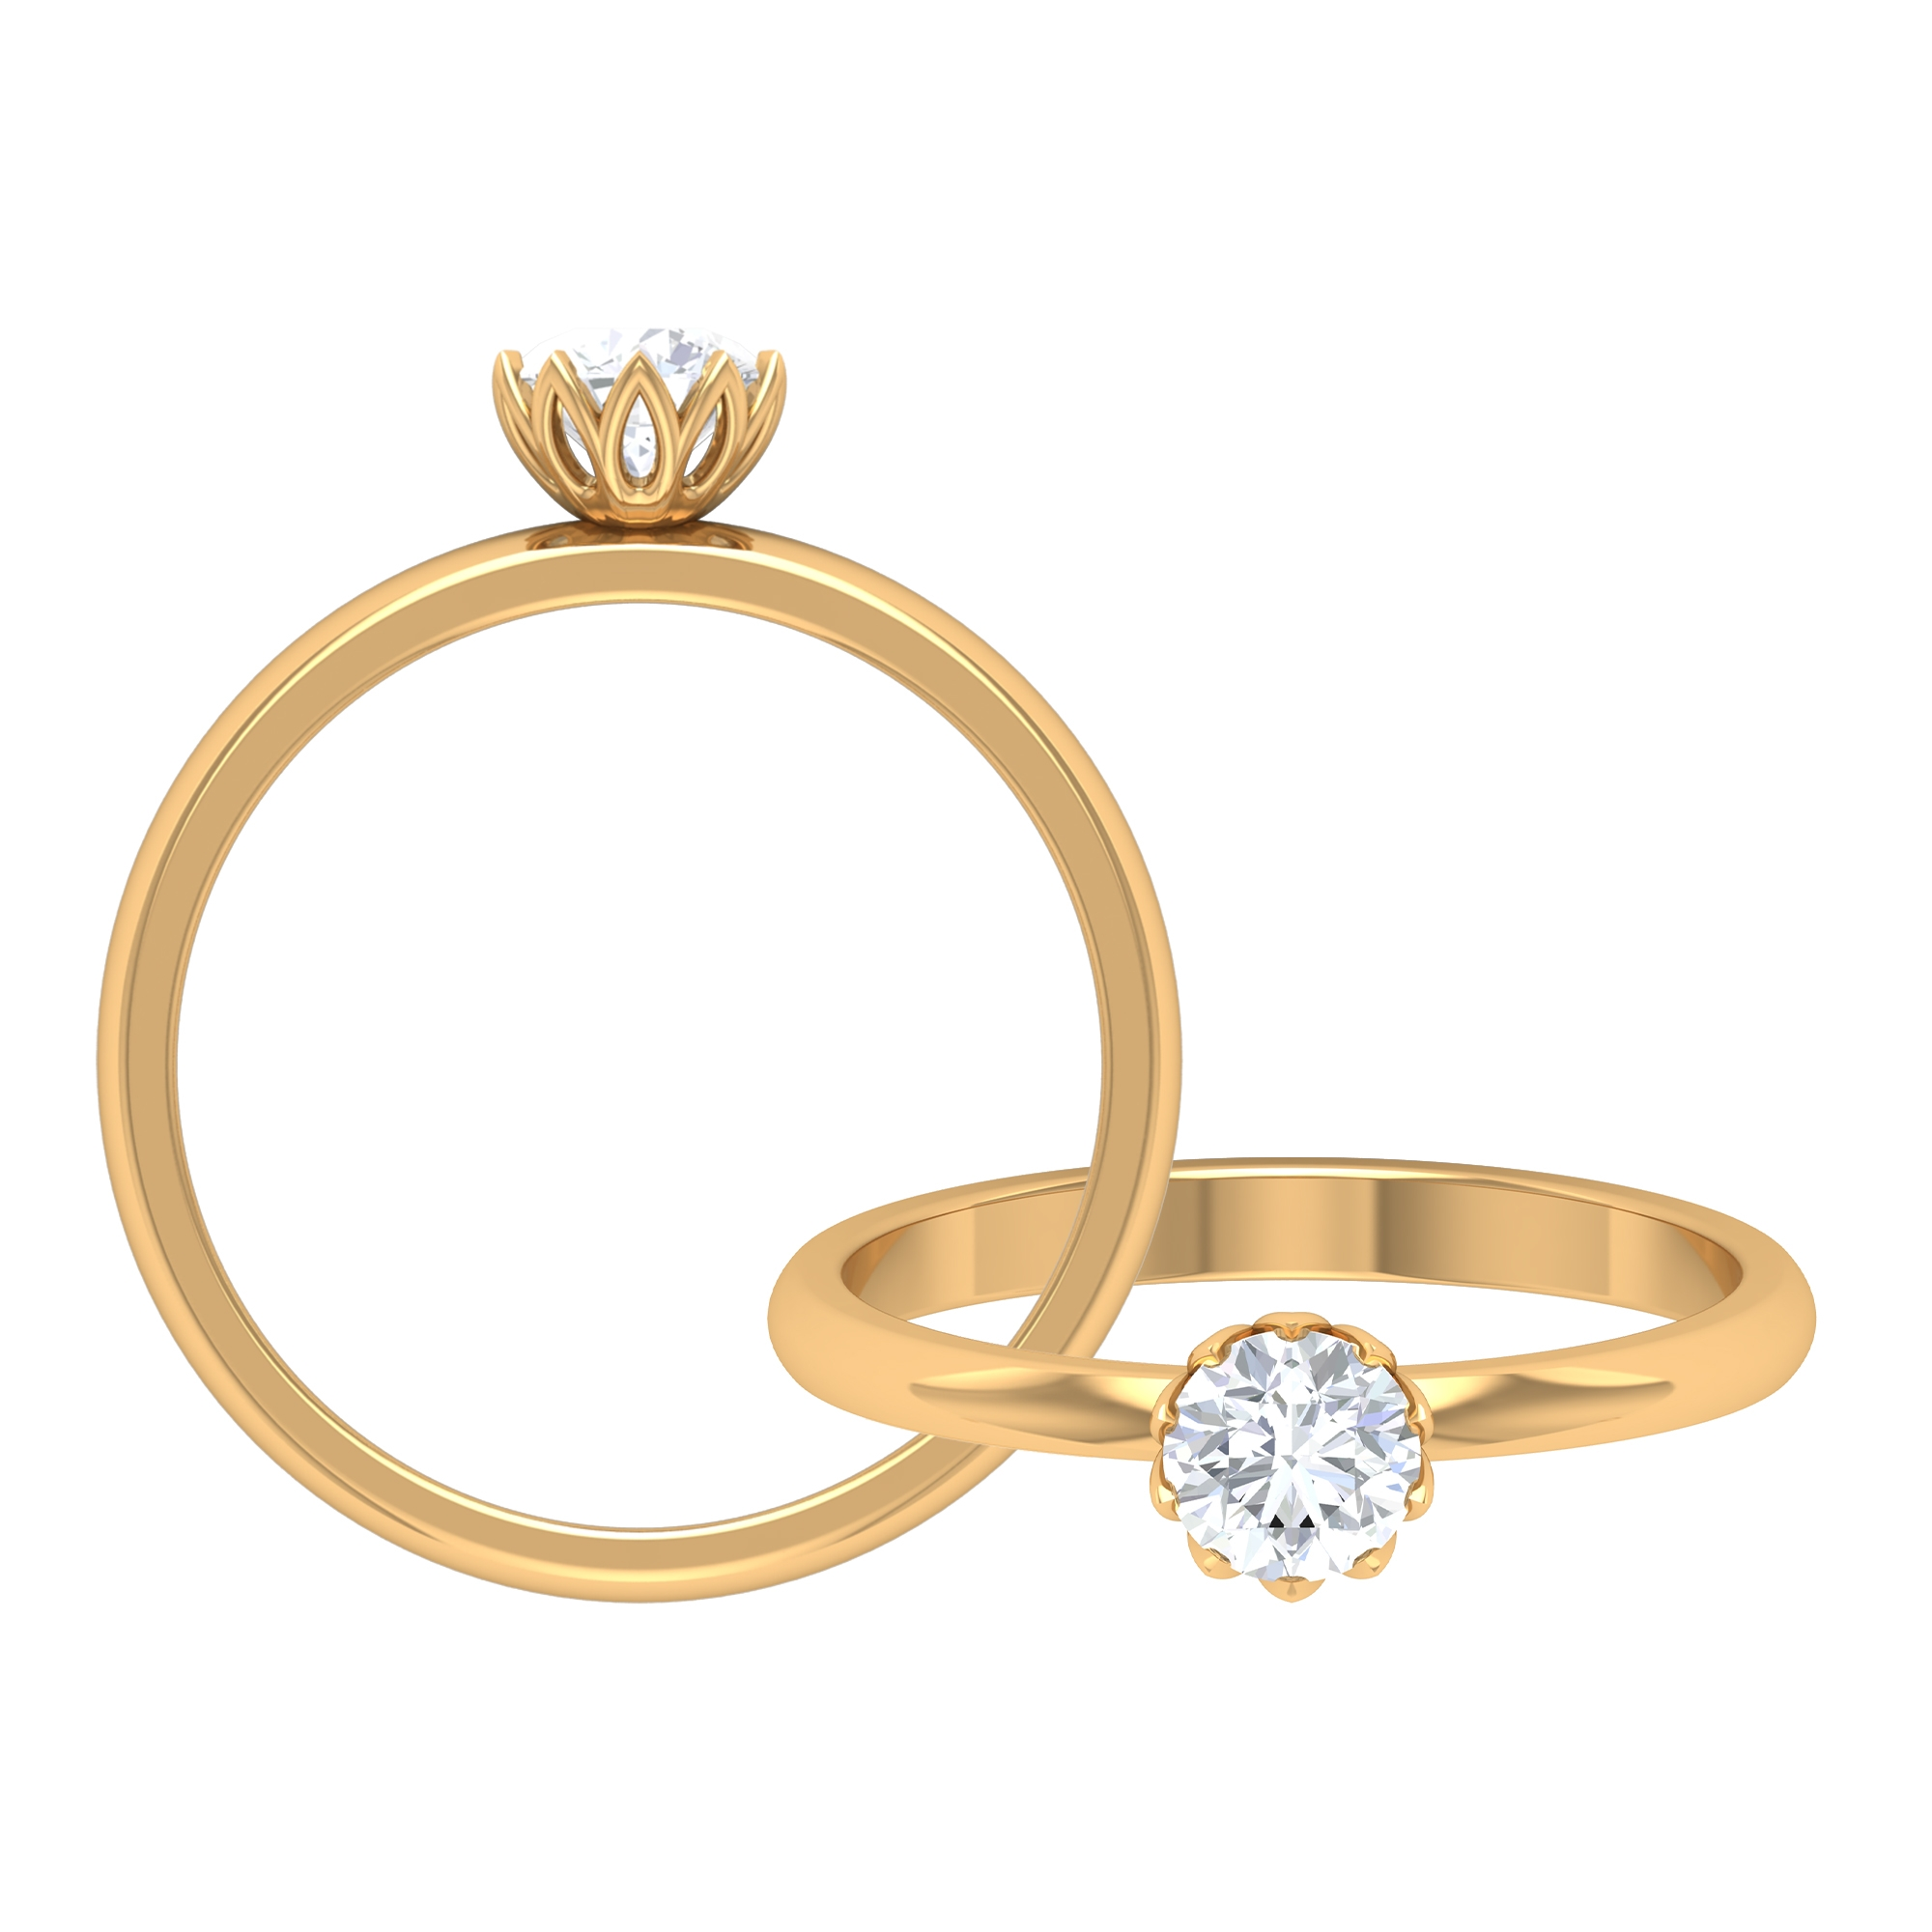 5 MM Round Cut Diamond Solitaire Ring in Lotus Basket Setting